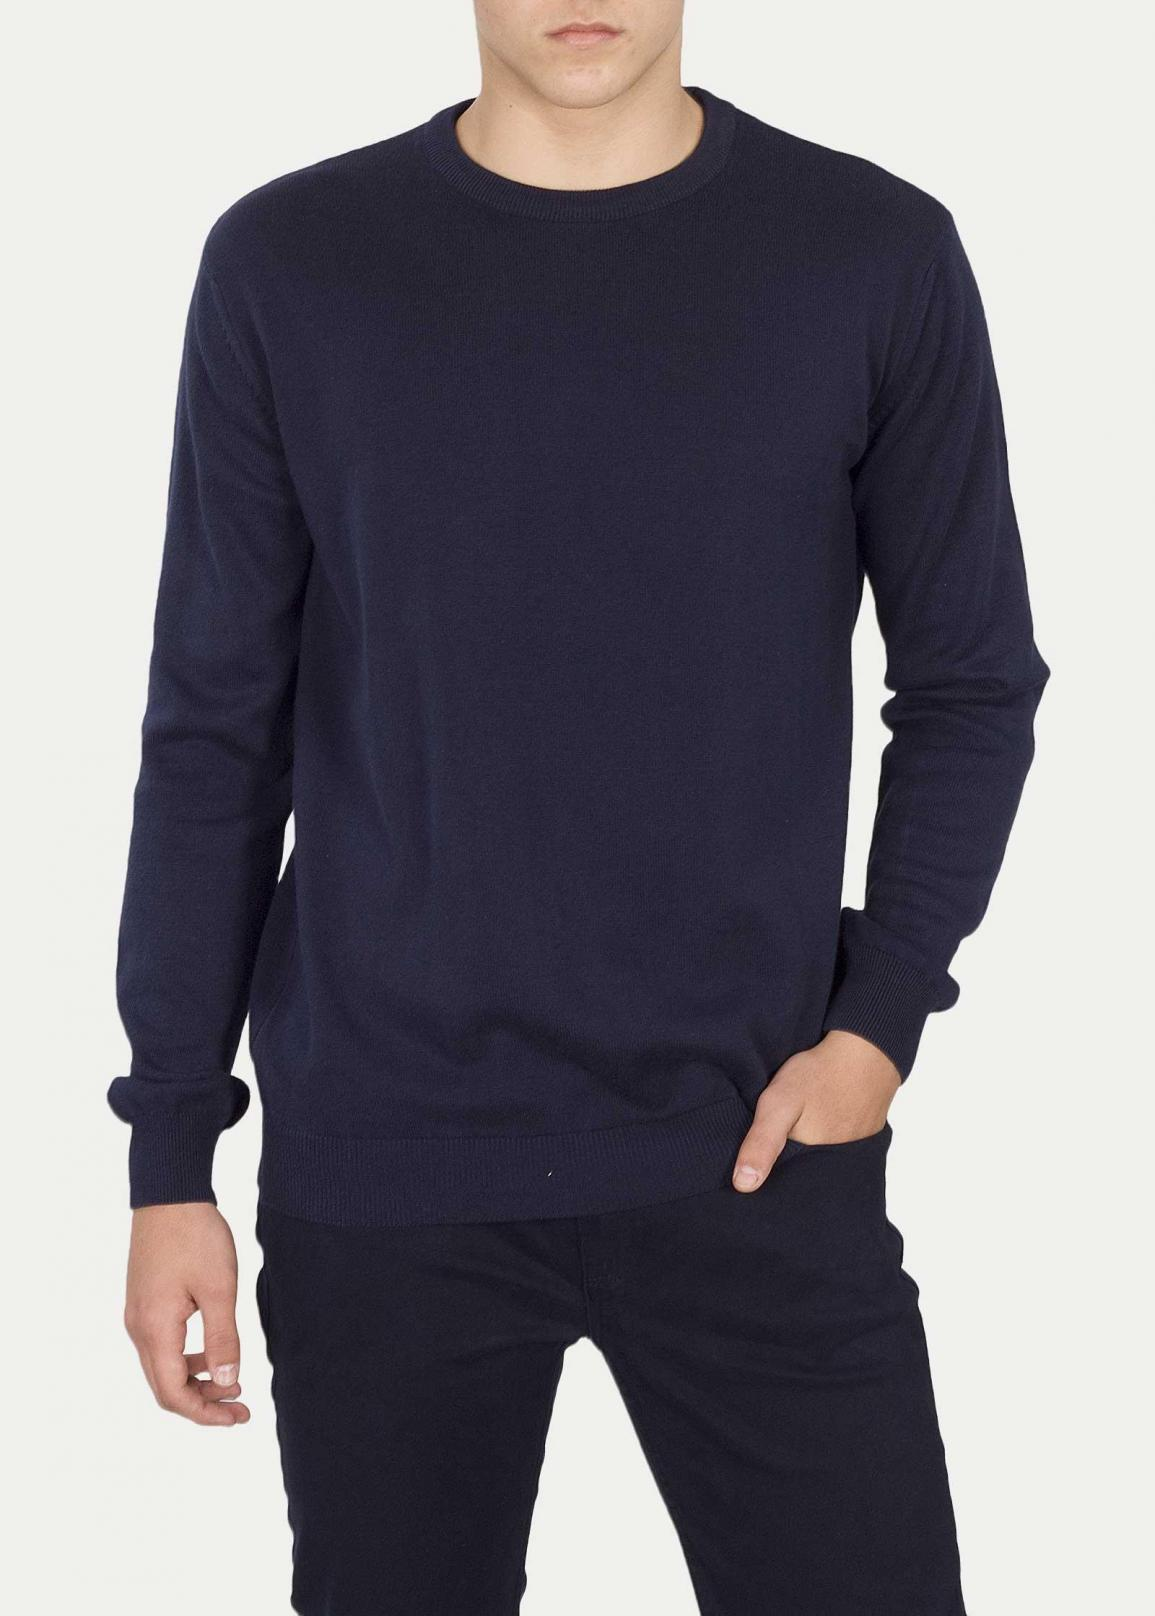 Cross Jeans® Sweter 34156 - Navy (001)